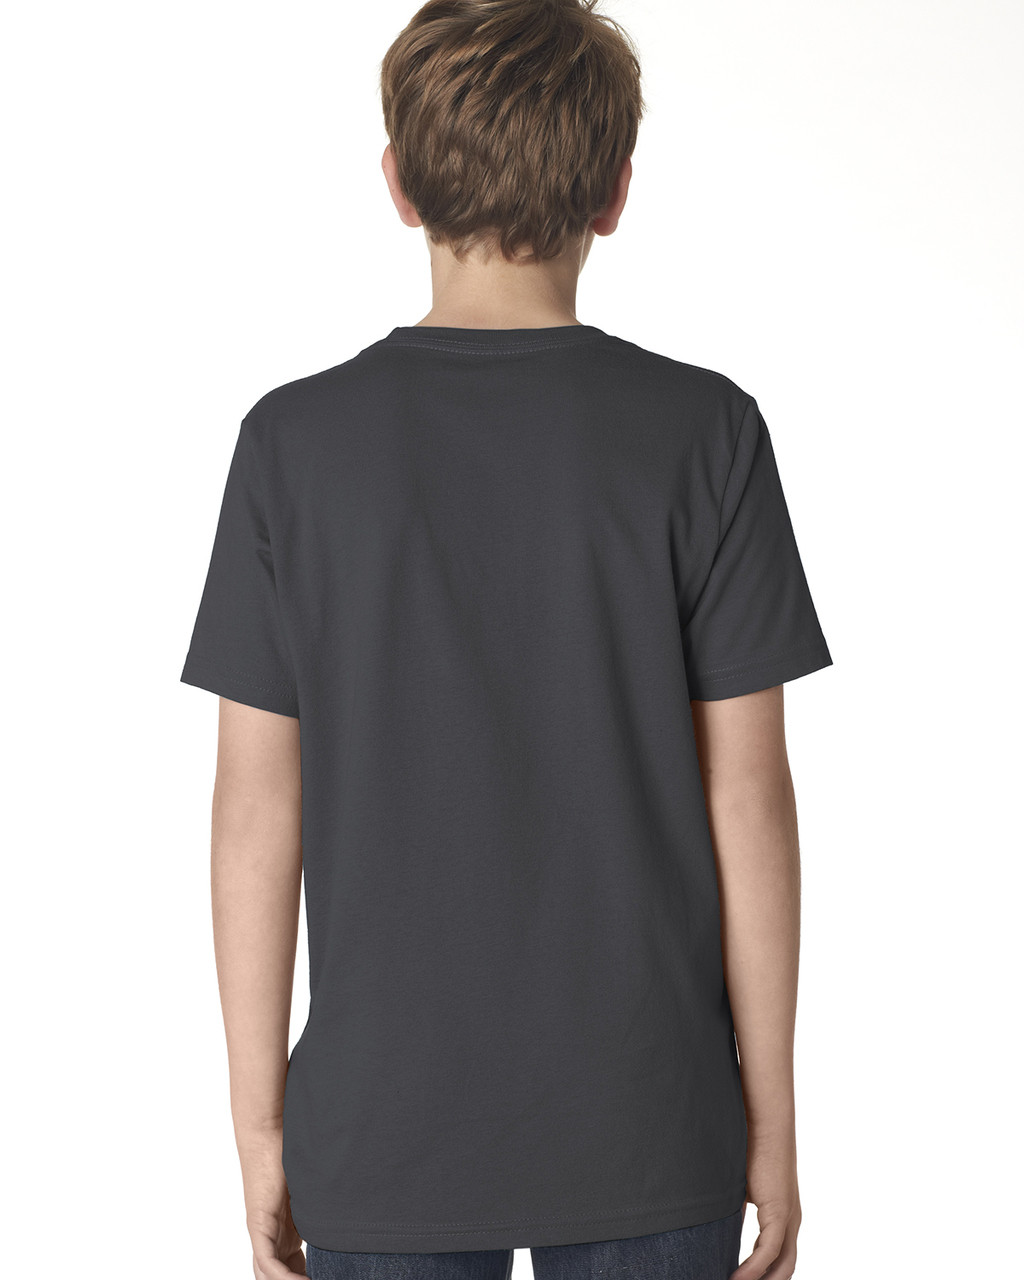 Heavy Metal, back 3310 Next Level Boys' Premium Crew Tee | Blankclothing.ca